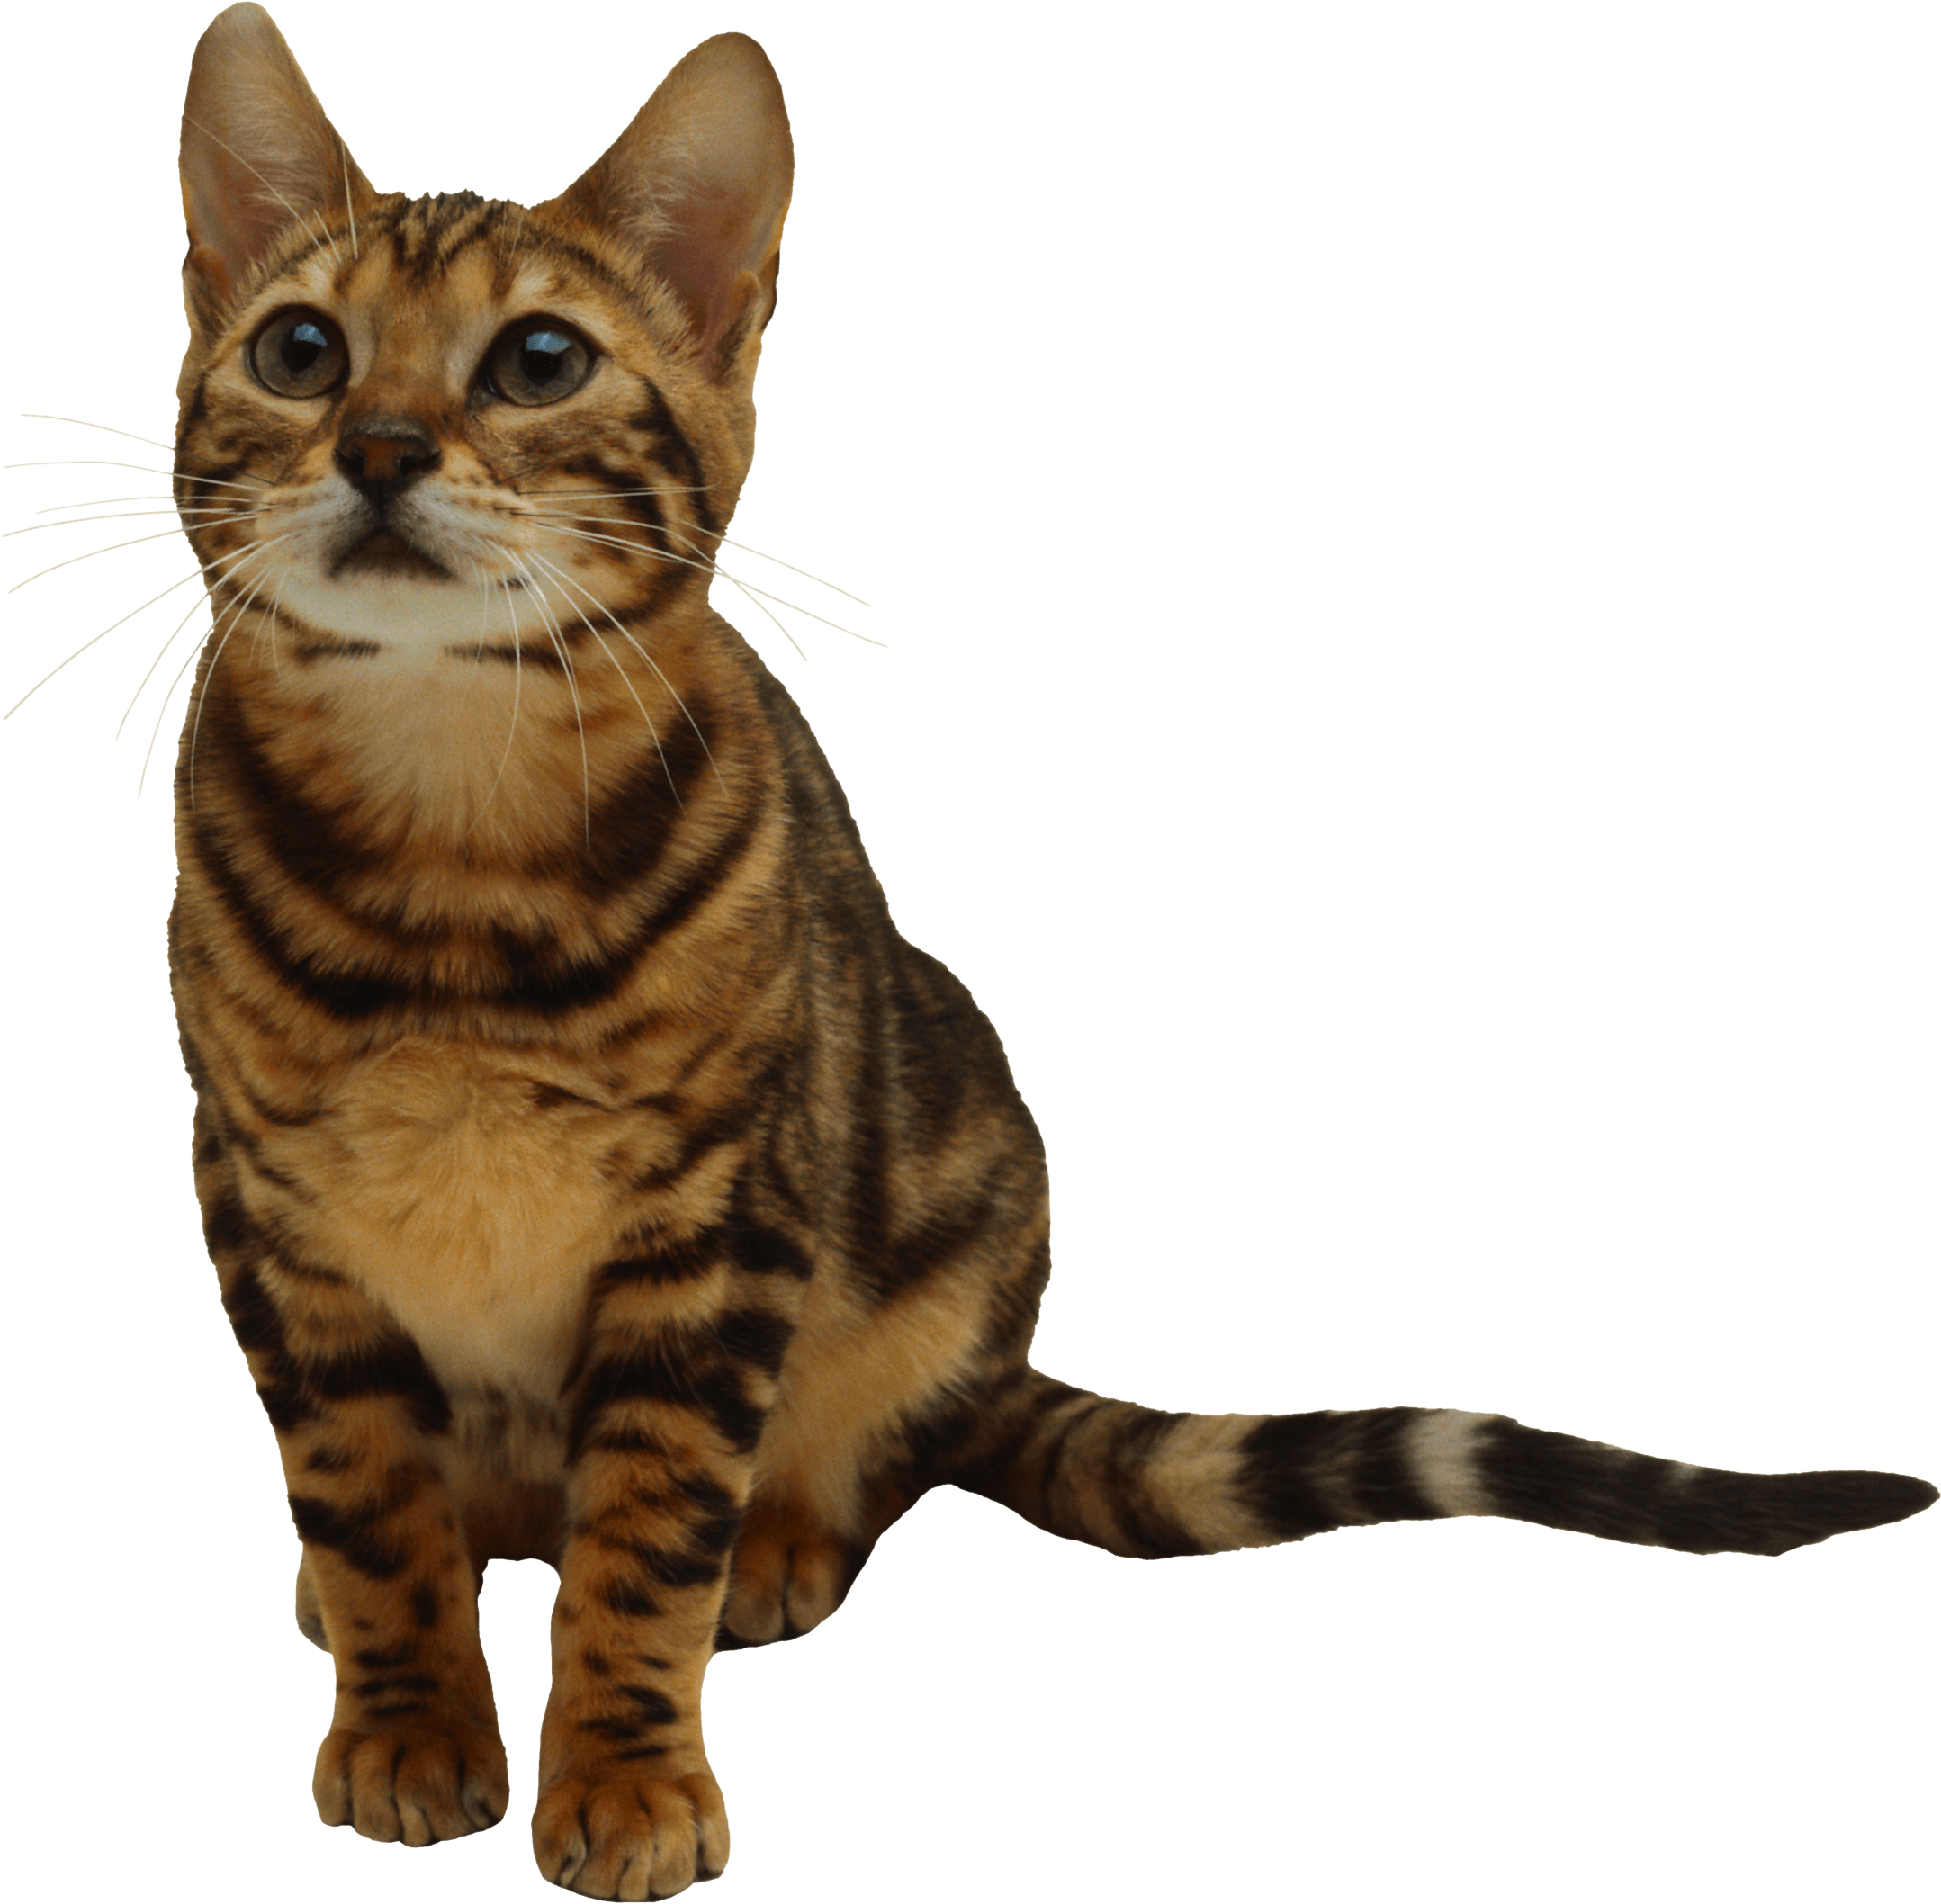 Brown cat clipart picture royalty free library 25 Kitten Png Image Download Picture picture royalty free library